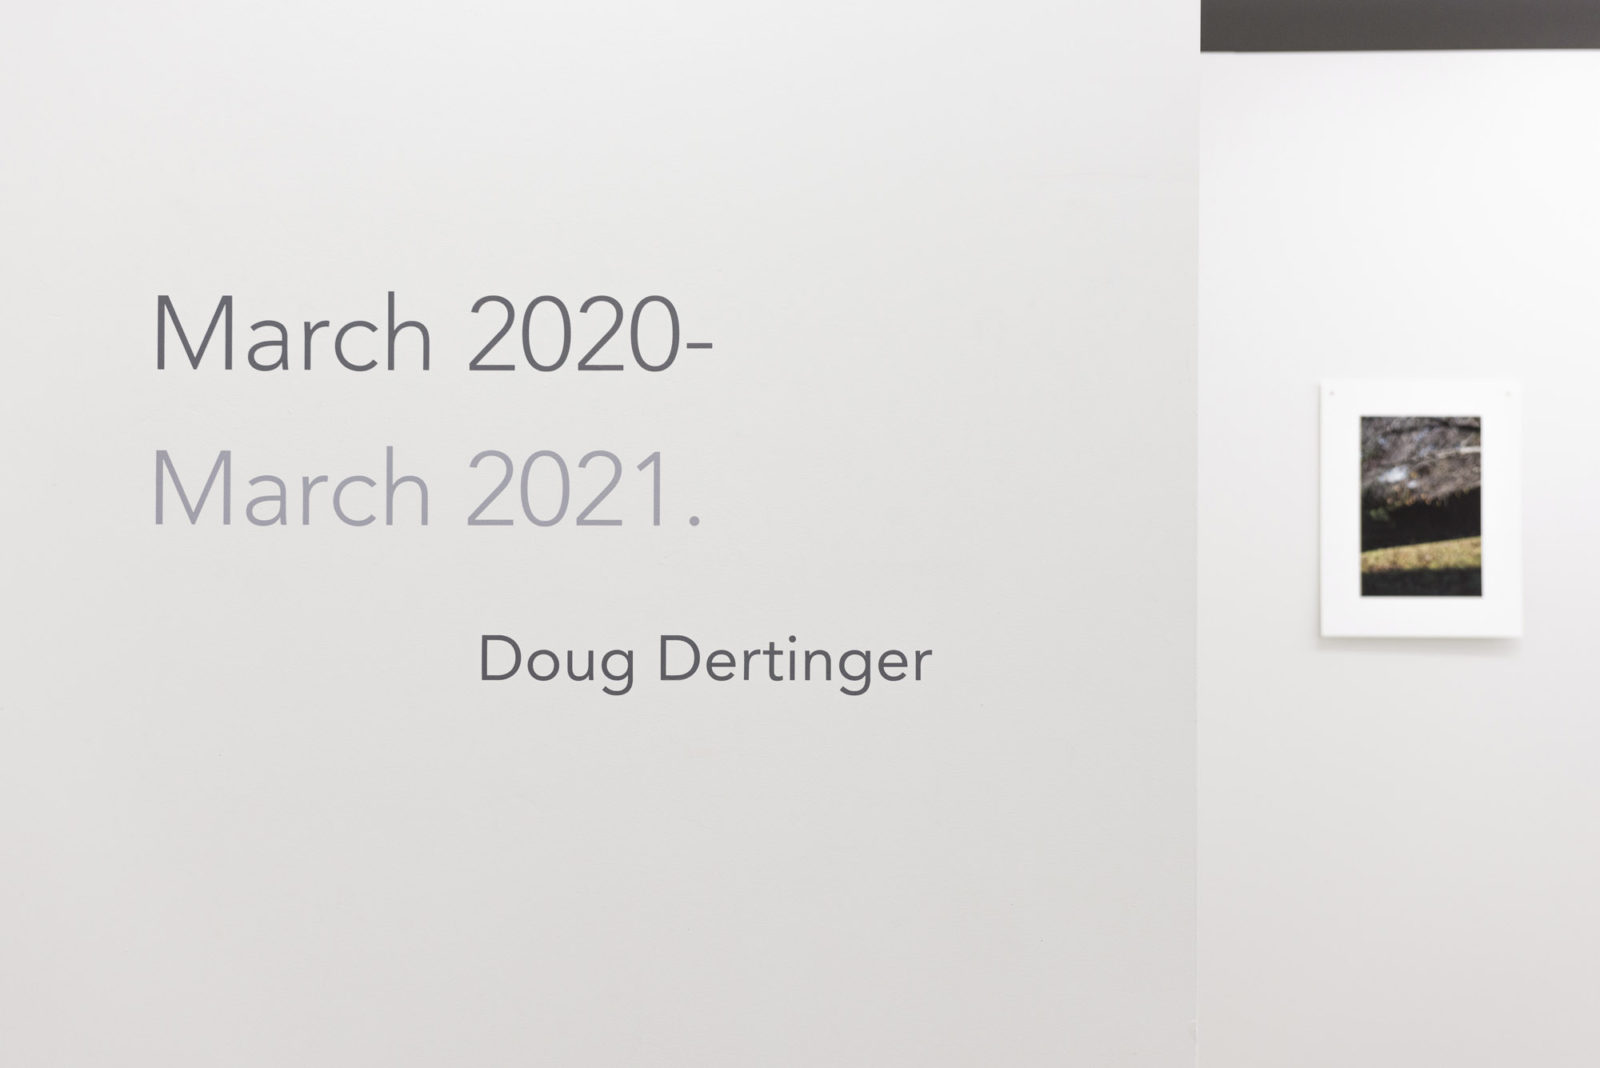 March 2020 – March 2021.